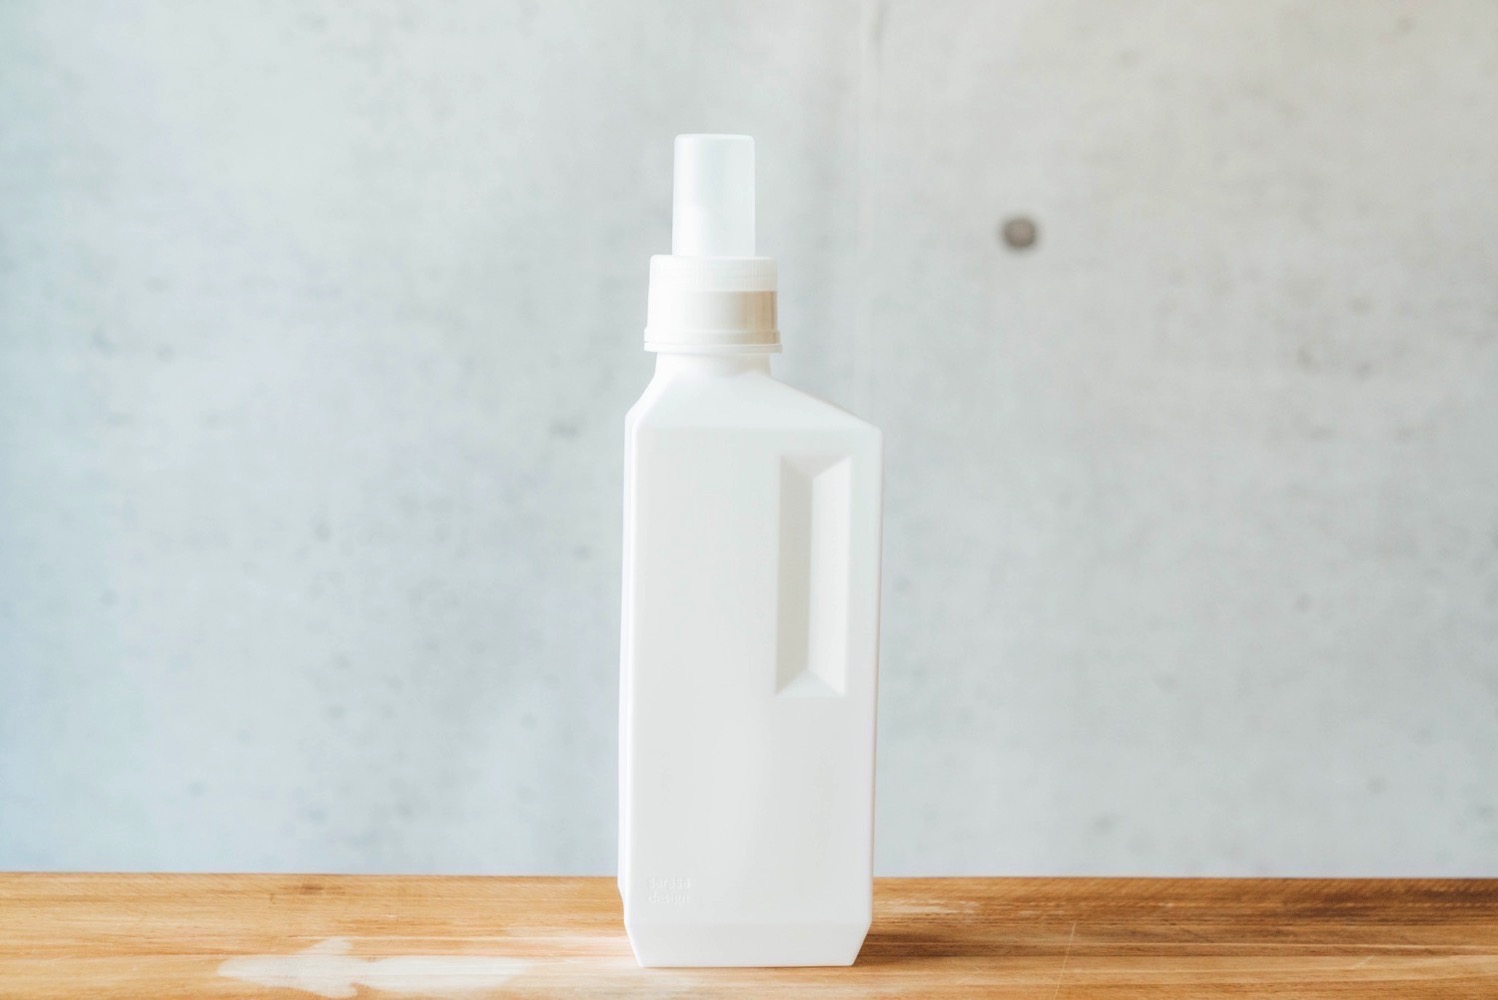 B2c laundry bottle 2